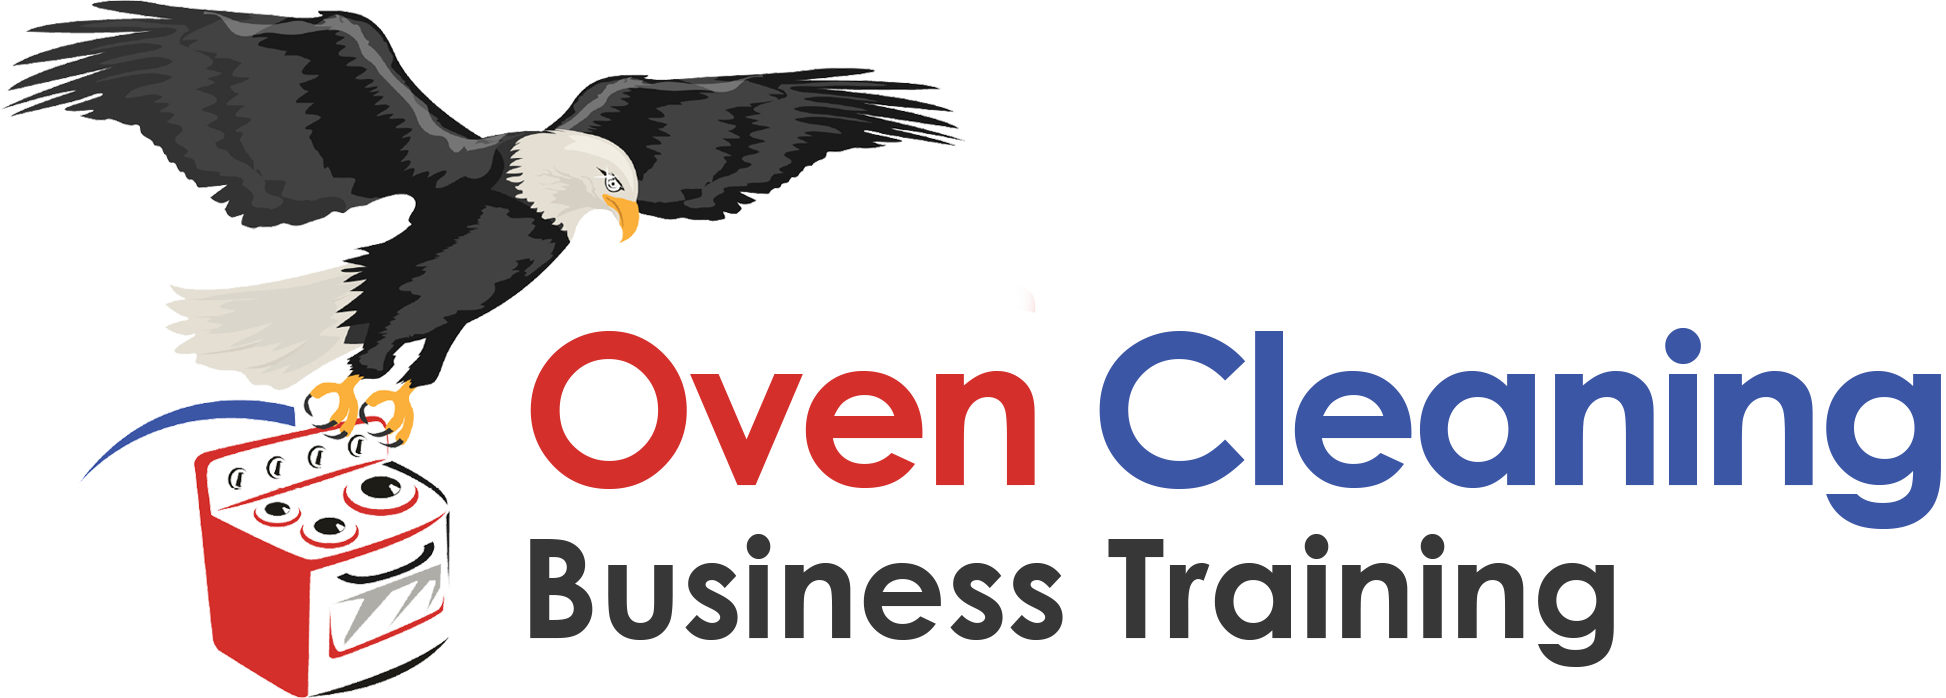 Oven Cleaning Business Start Up